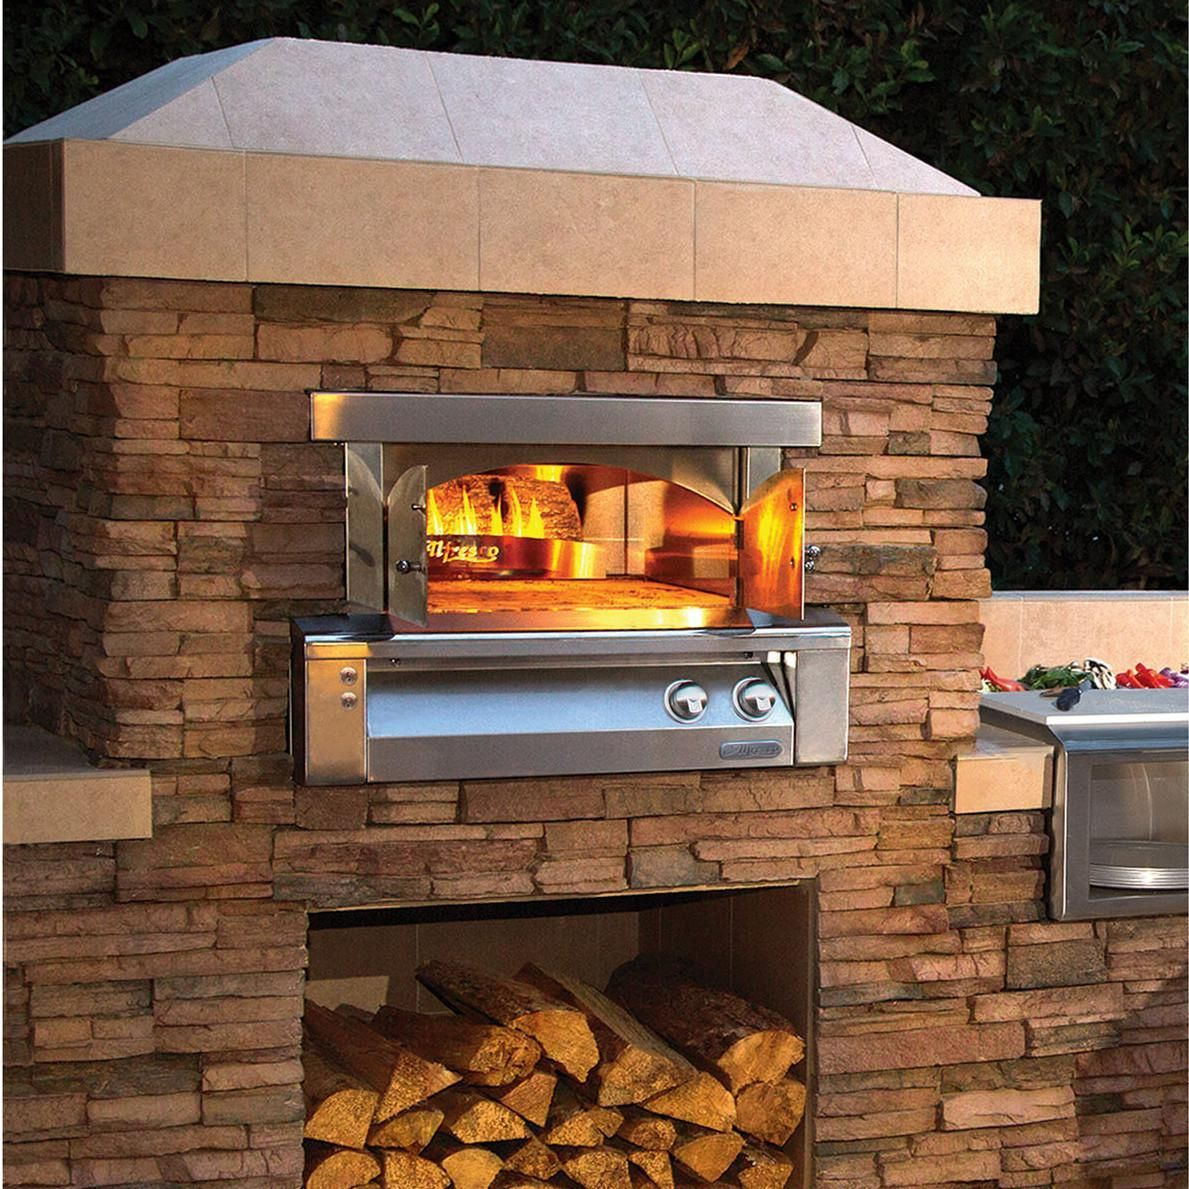 "30 Outdoor Kitchens And Grilling Stations: Alfresco 30"" Built-In Propane Outdoor Pizza Oven Plus"